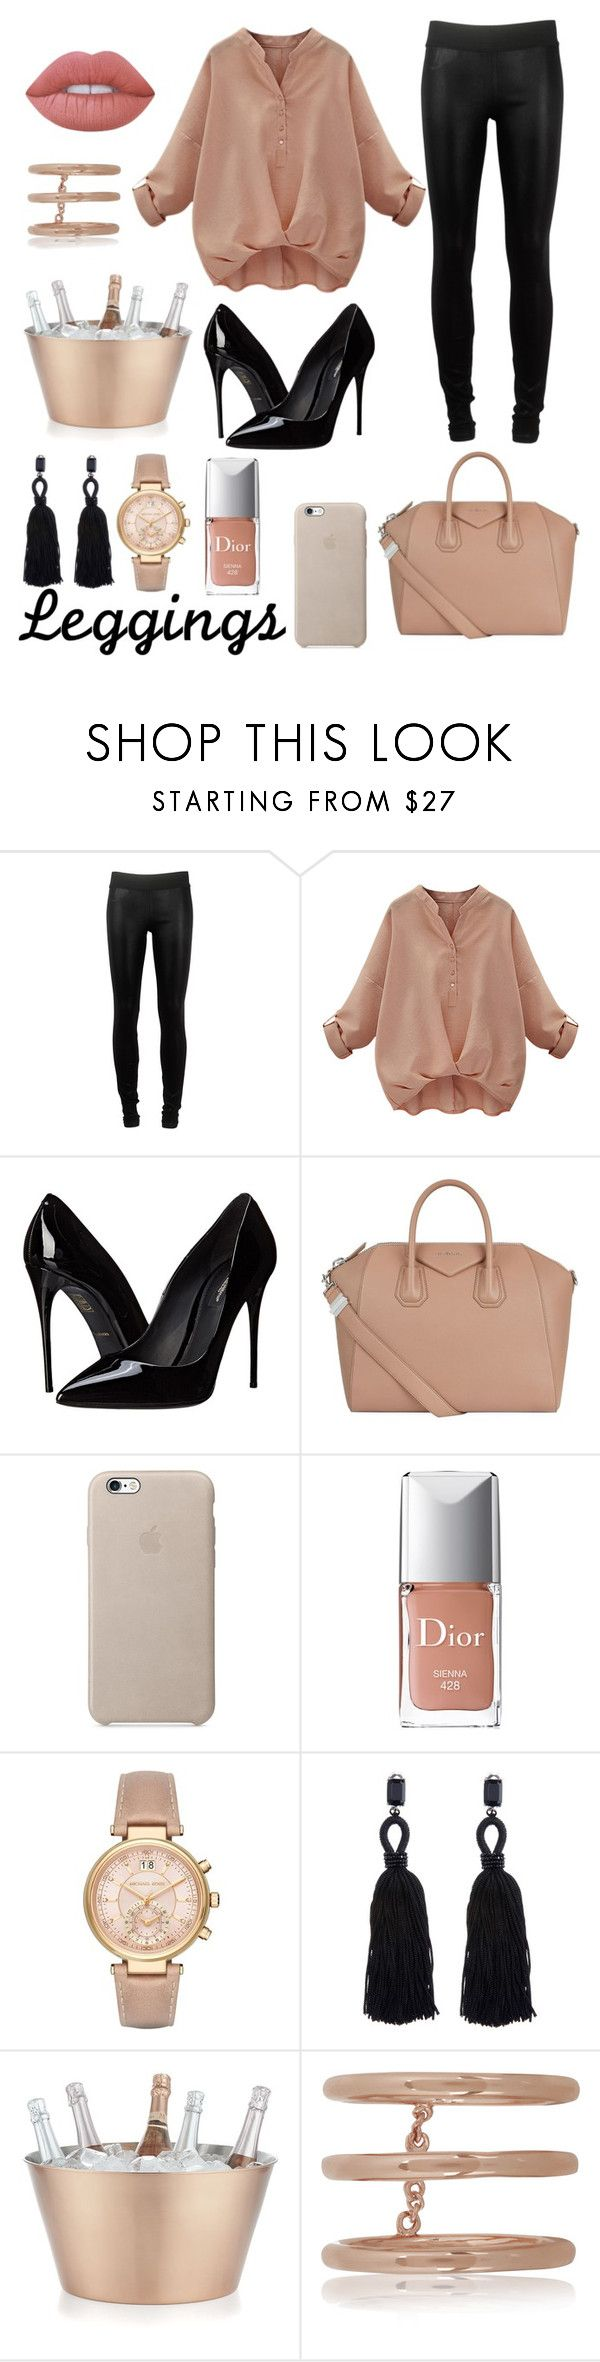 """Leggins it's perfect "" by alnecha ❤ liked on Polyvore featuring Goldsign, Dolce&Gabbana, Givenchy, Christian Dior, Michael Kors, Oscar de la Renta, Crate and Barrel, Arme De L'Amour, Lime Crime and Leggings"